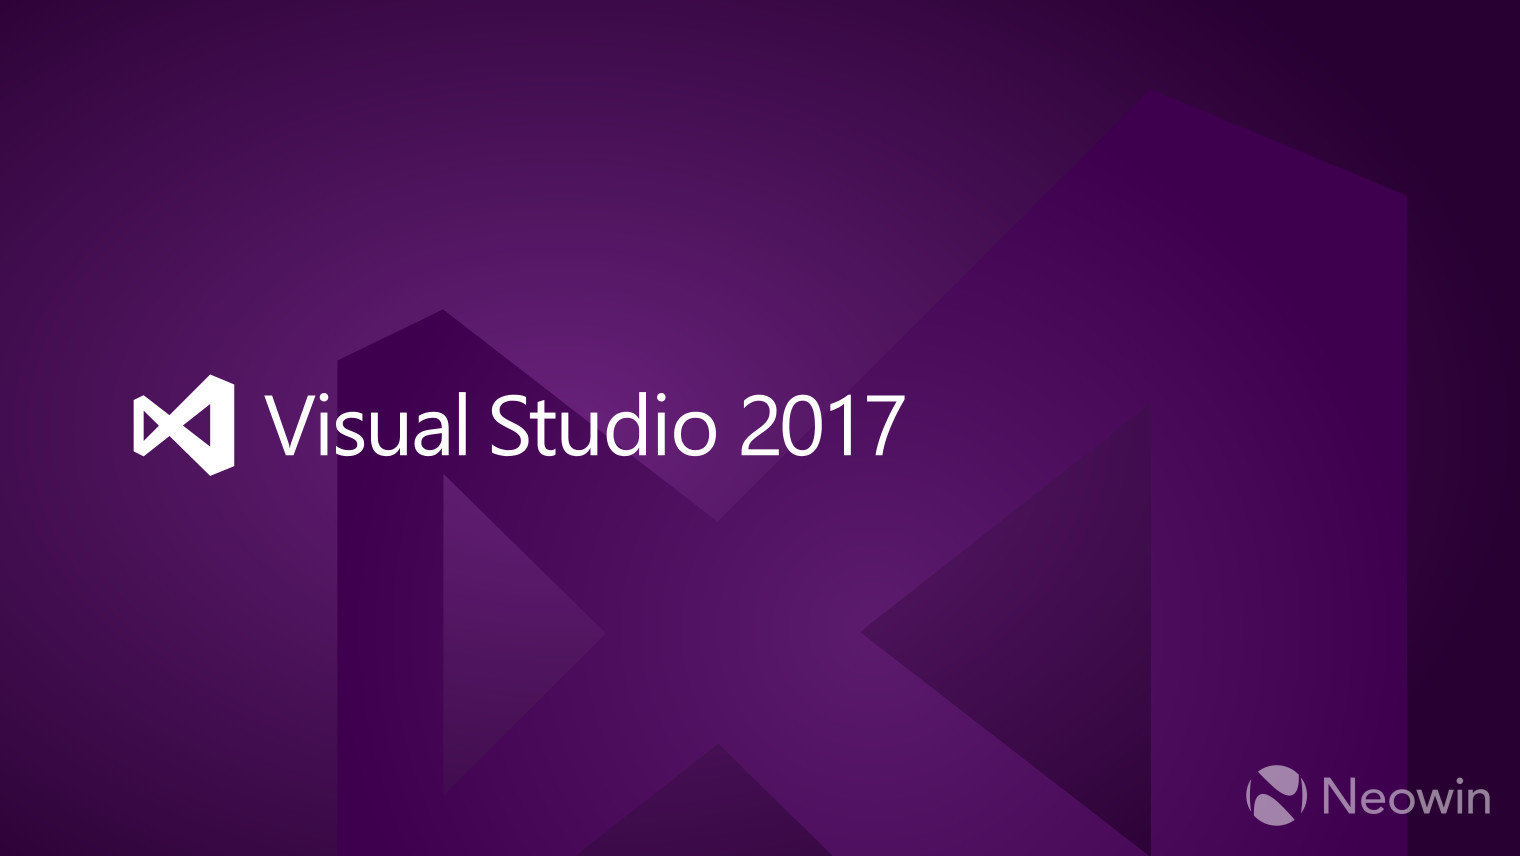 Jawad Name Wallpaper Hd Microsoft Rolls Out Update For Visual Studio 2017 Release